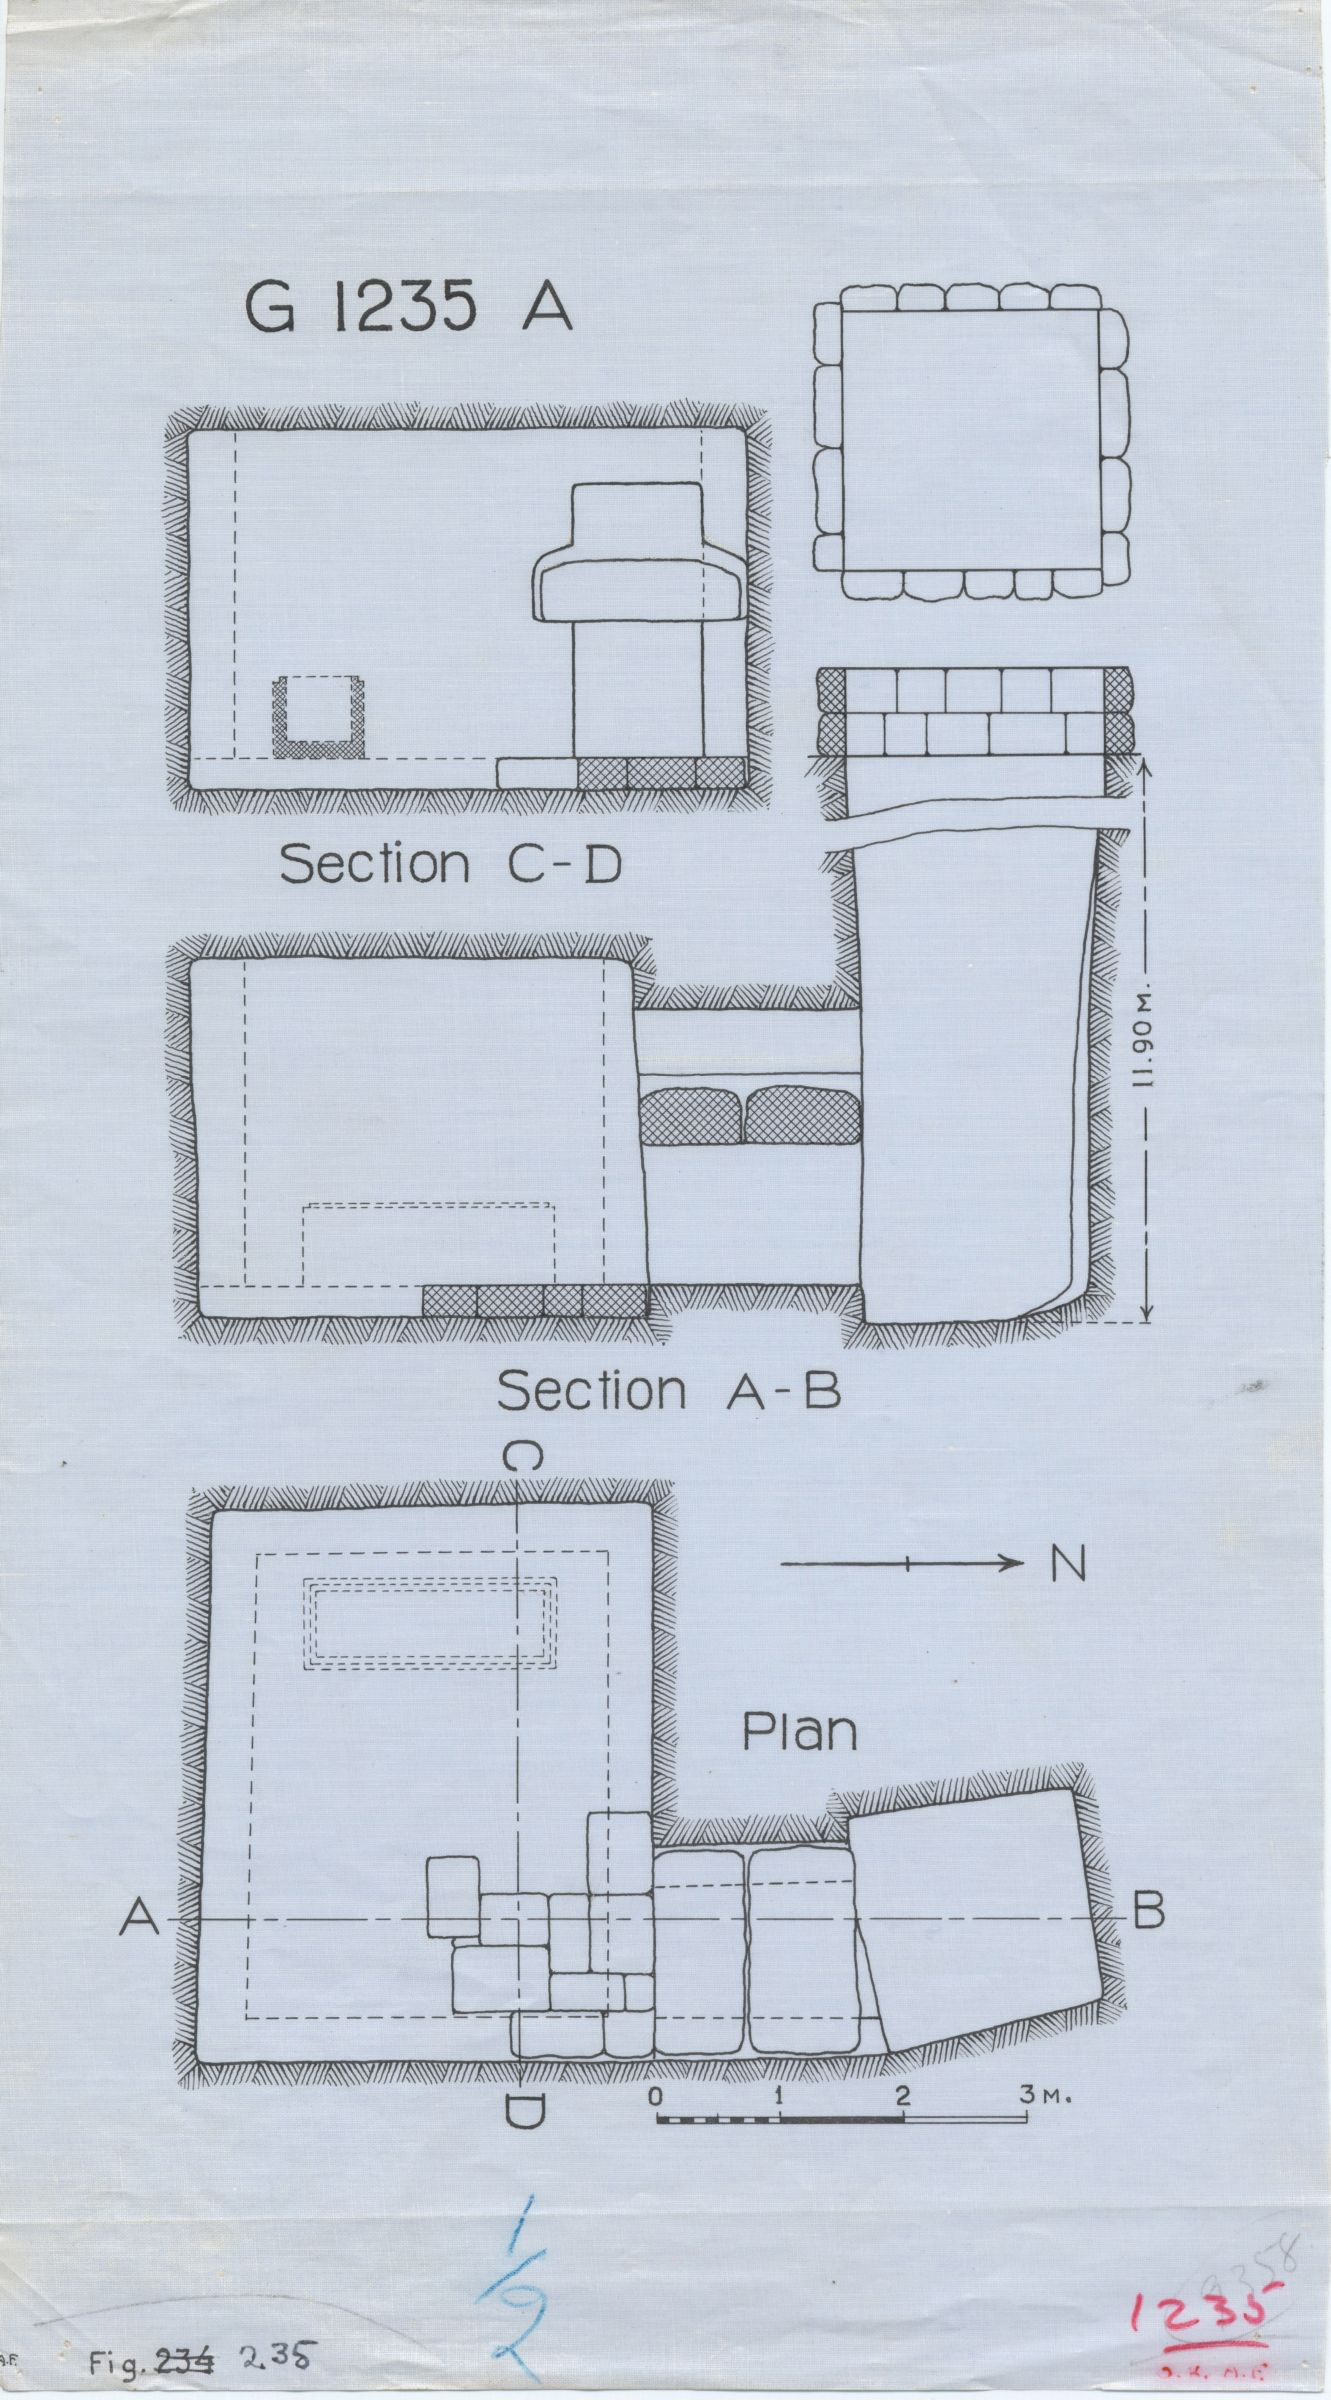 Maps and plans: G 1235, Shaft A